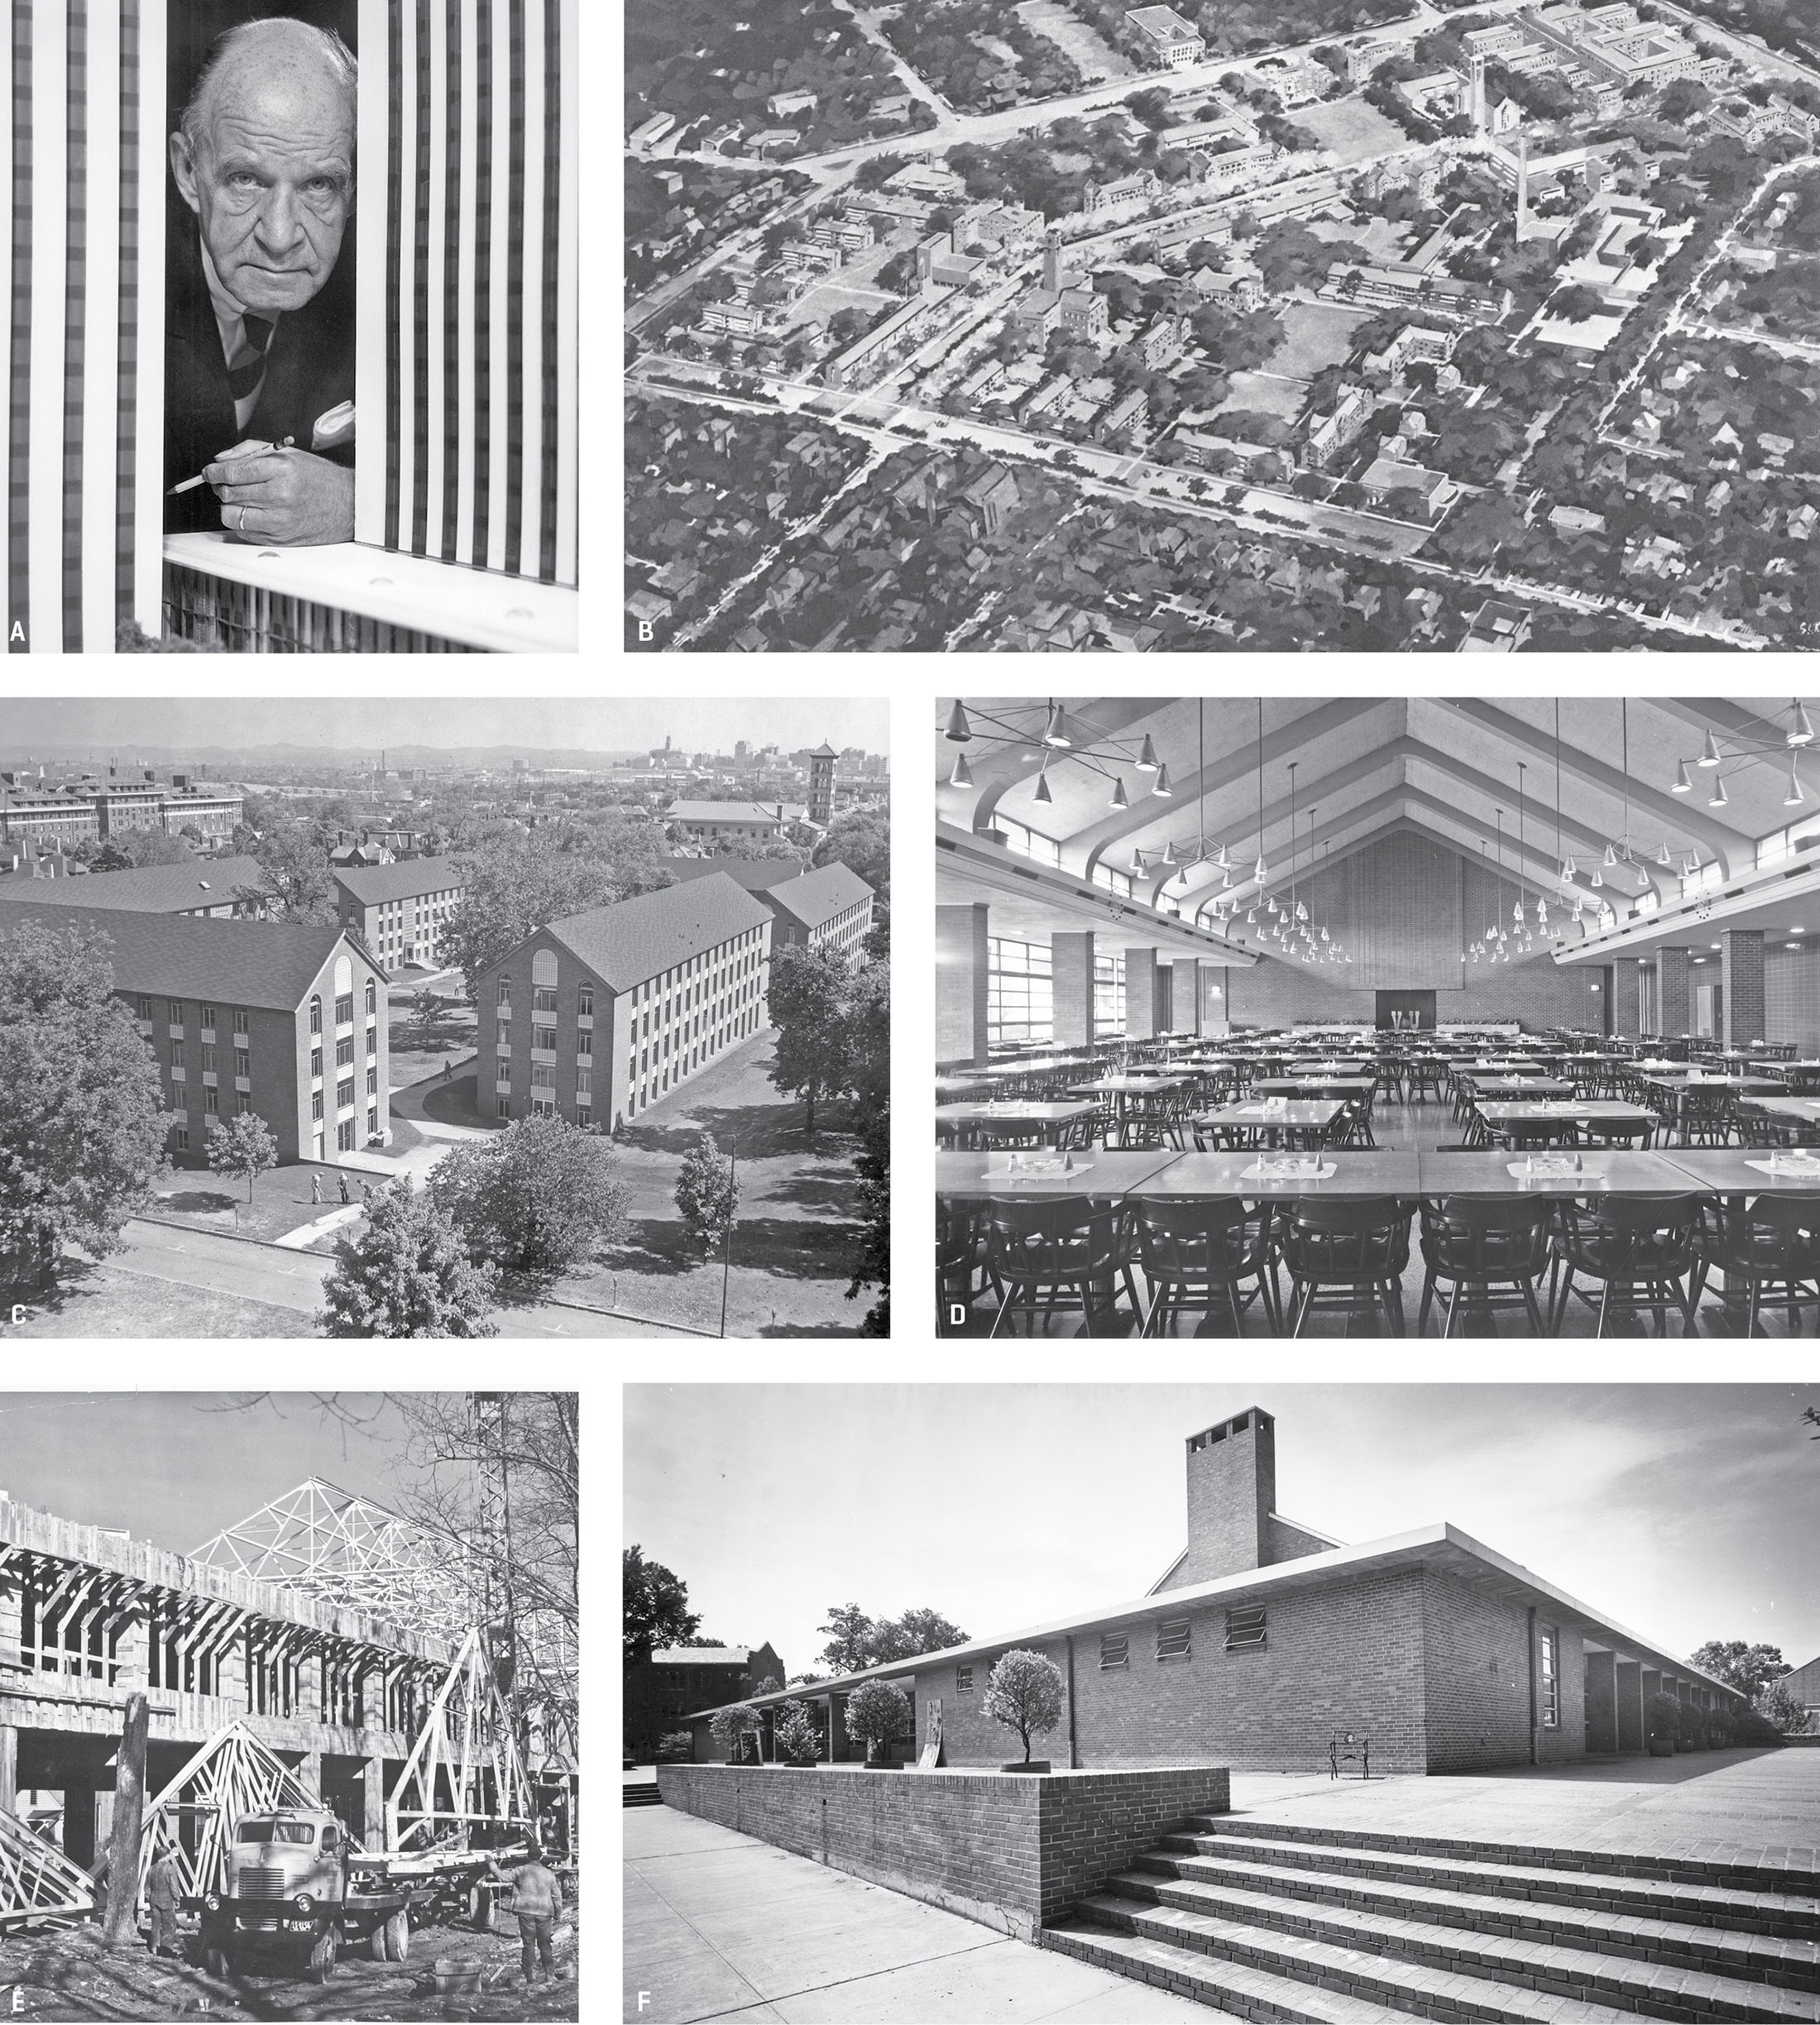 Photos of Edward Durell Stone and his buildings around campus